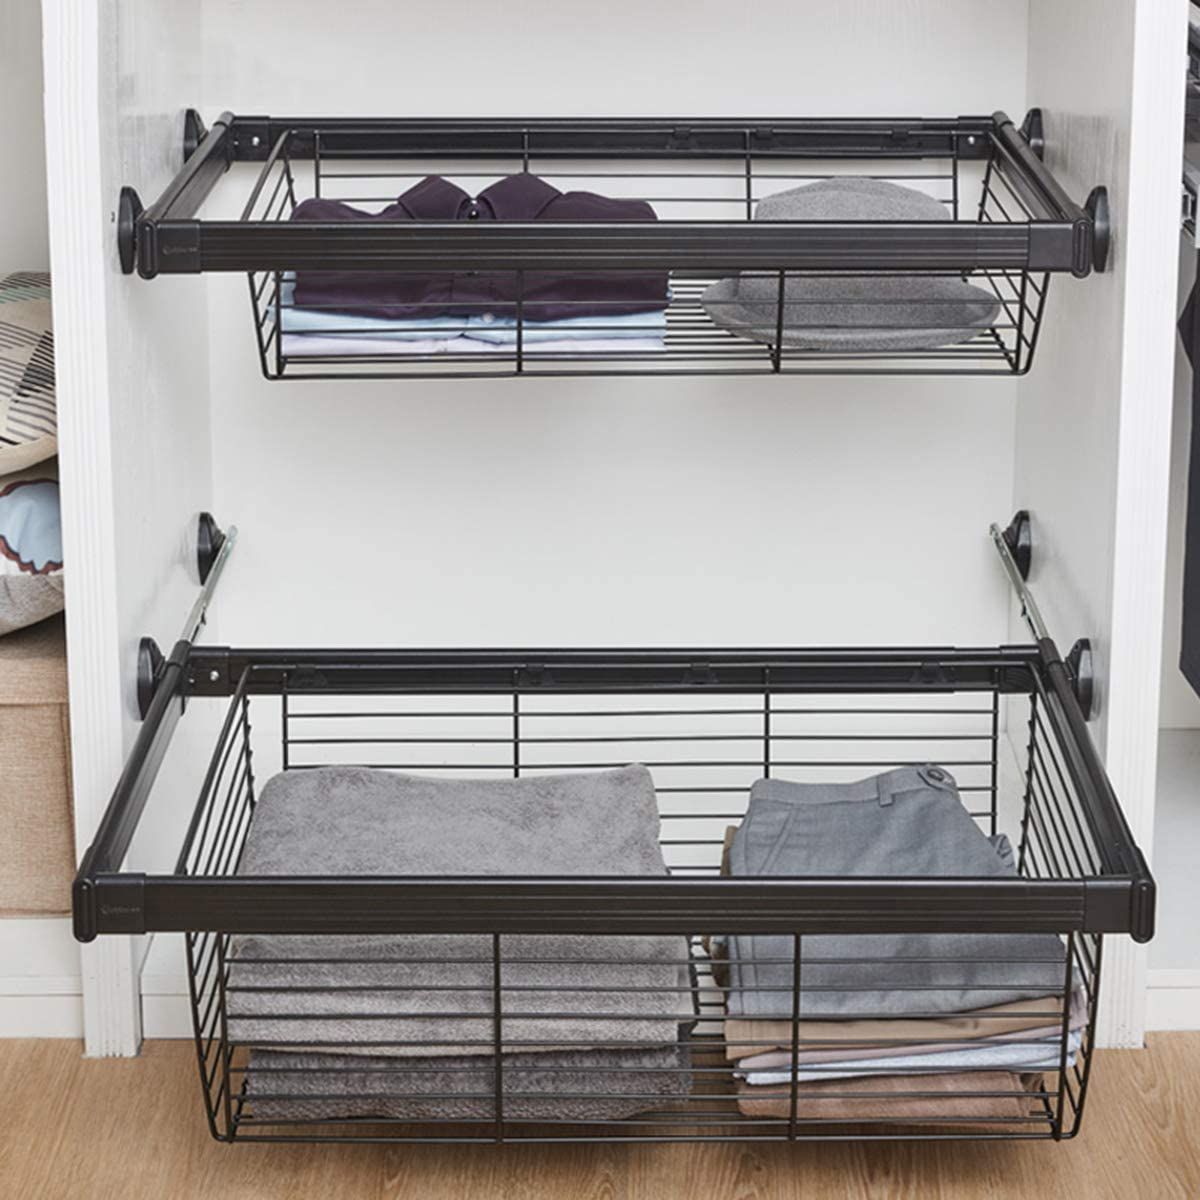 Ranking Attention brand TOP4 LJ Pull Out Wardrobe Cabinet Organizer Shelf Sliding Stainless